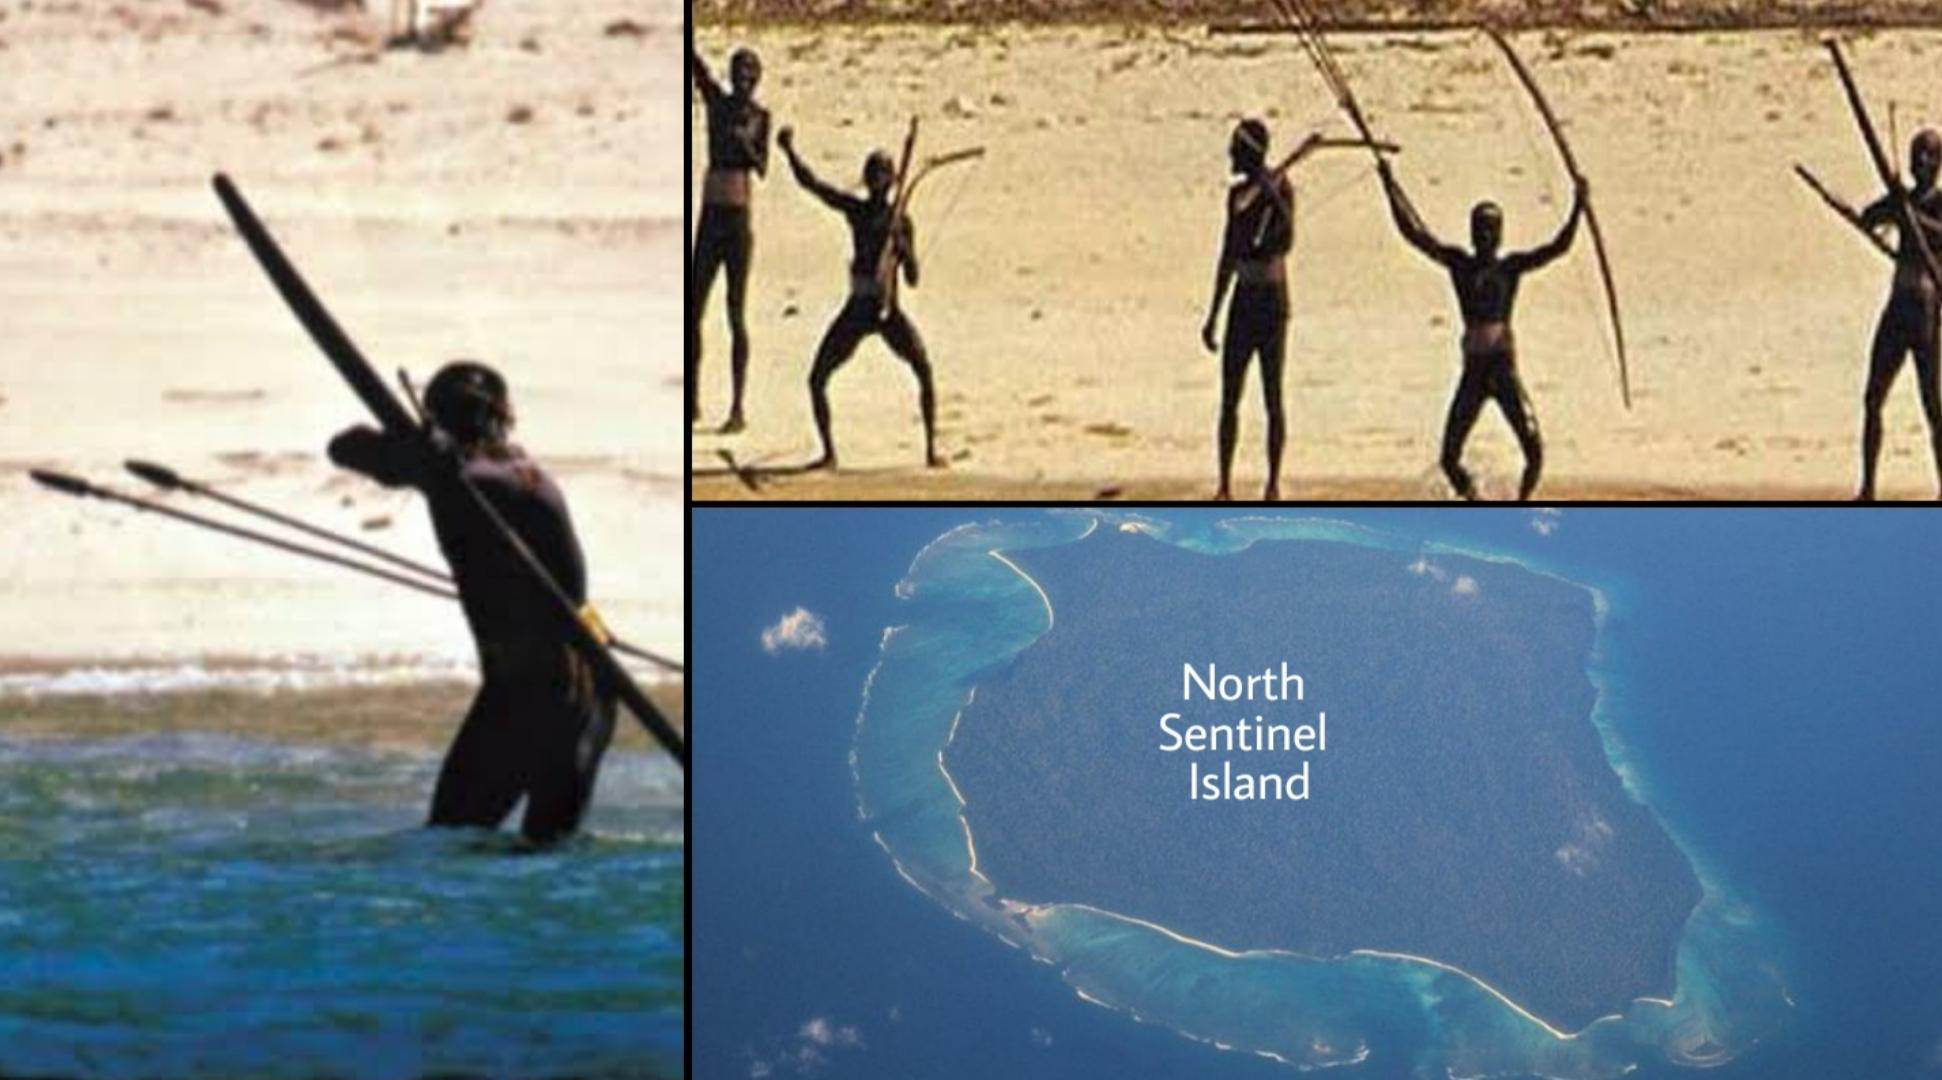 North Sentinelese: Tribe that avoided contact with others for over 60,000 years